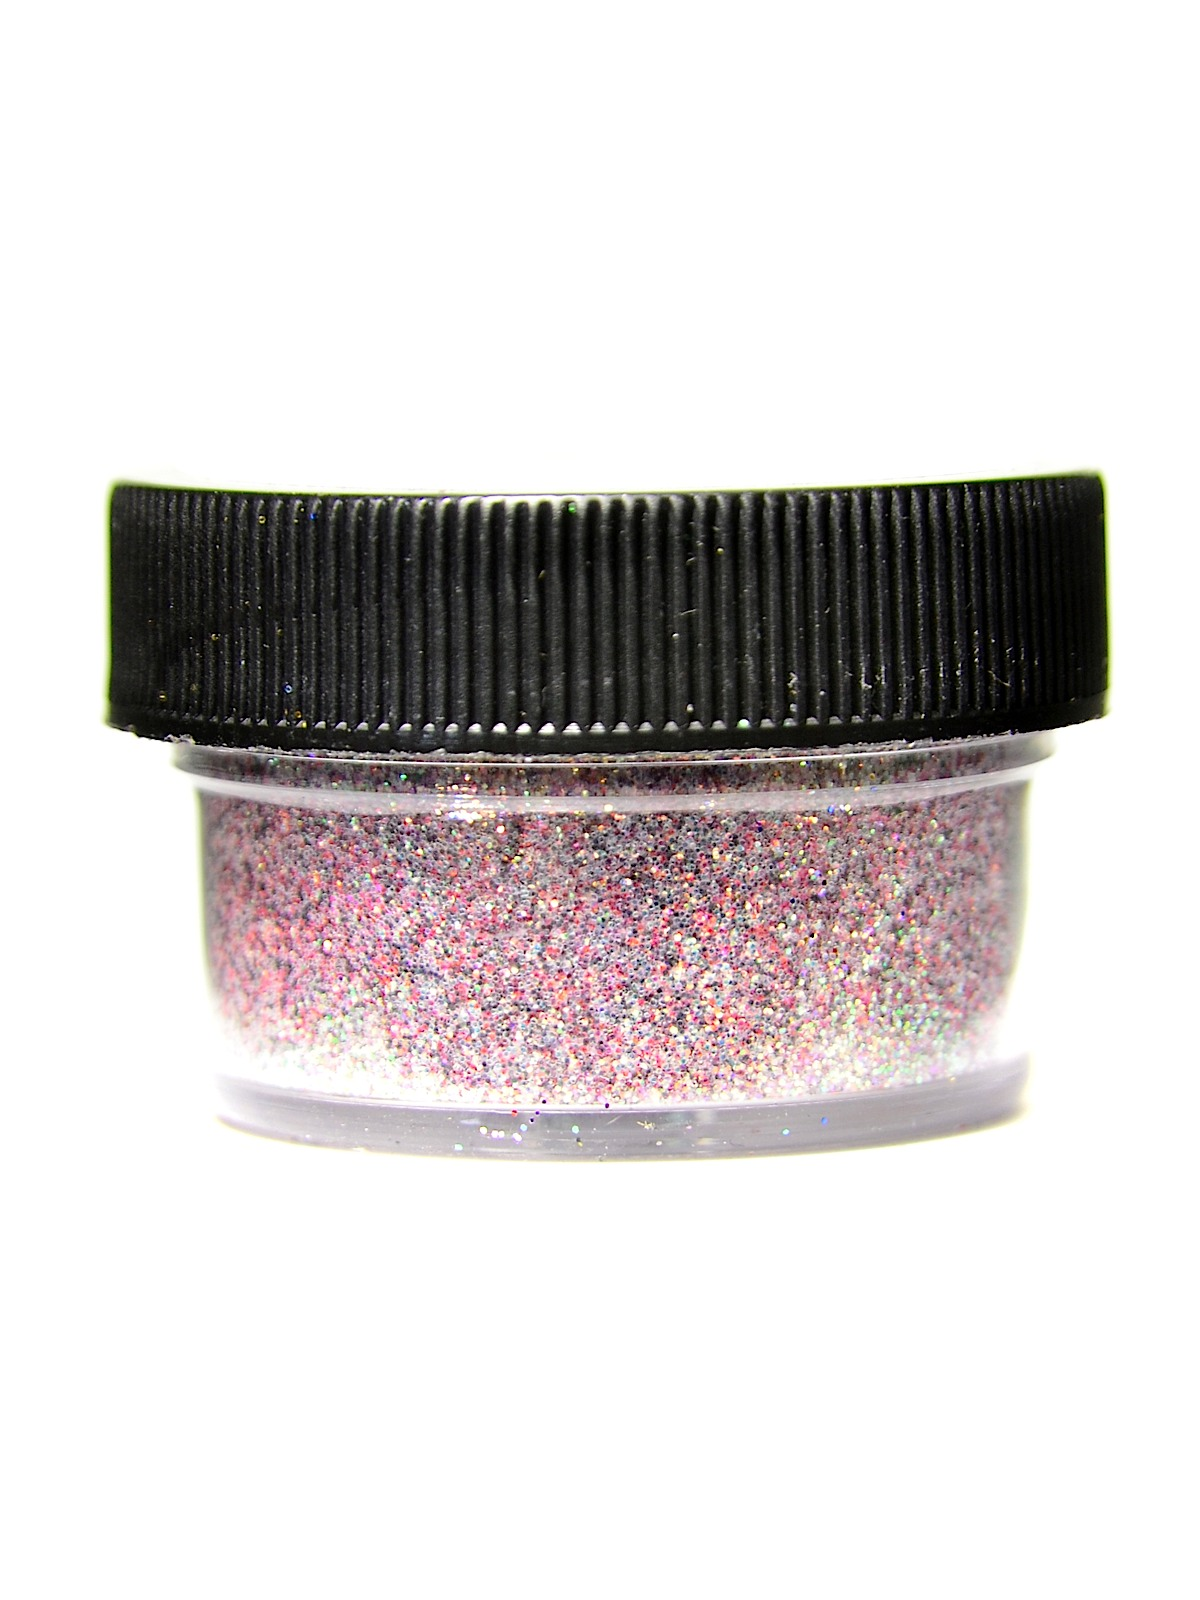 Ultrafine Transparent Glitter Gazelle 1 2 Oz. Jar